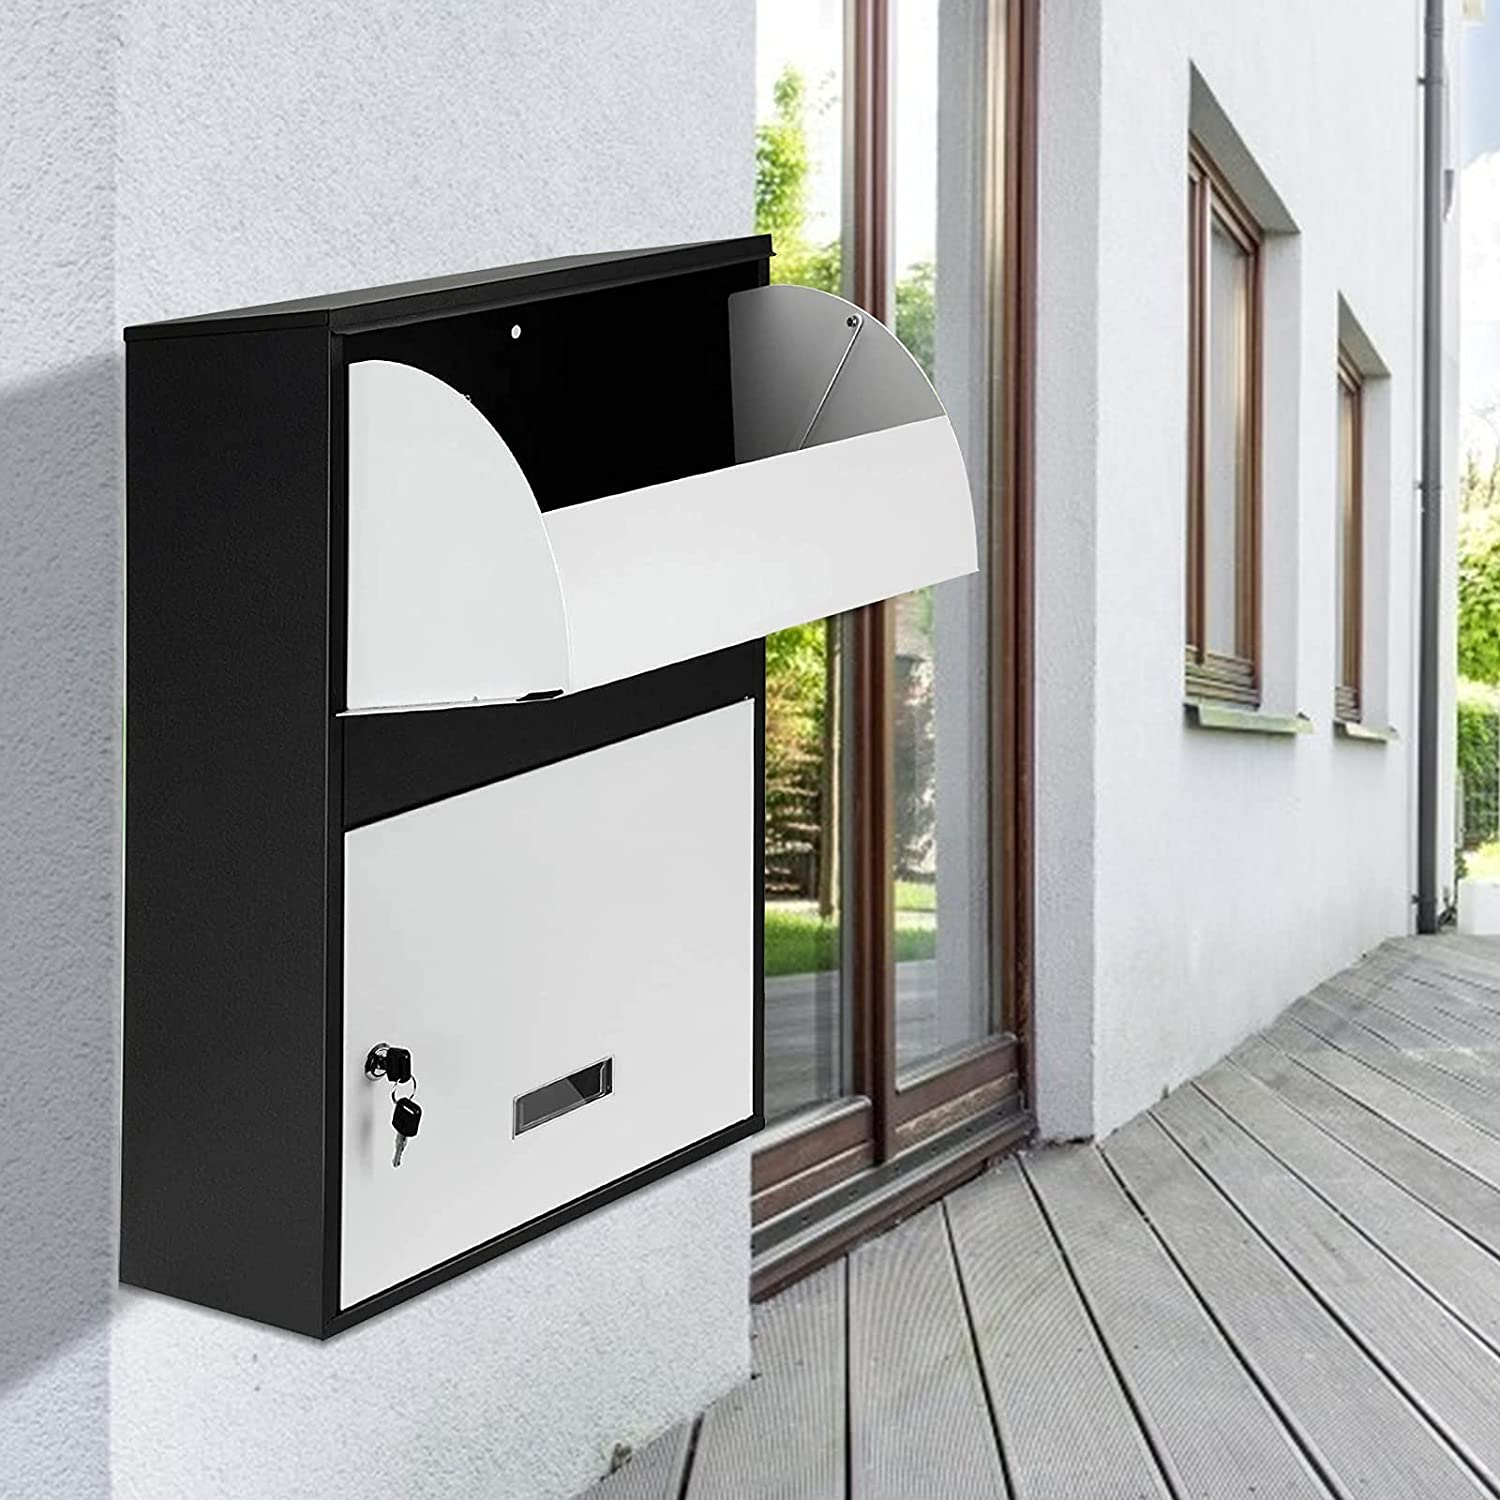 TELAM Lowest price challenge Parcel Box Outsidoor Waterproof Steel Express Max 84% OFF with Sturdy